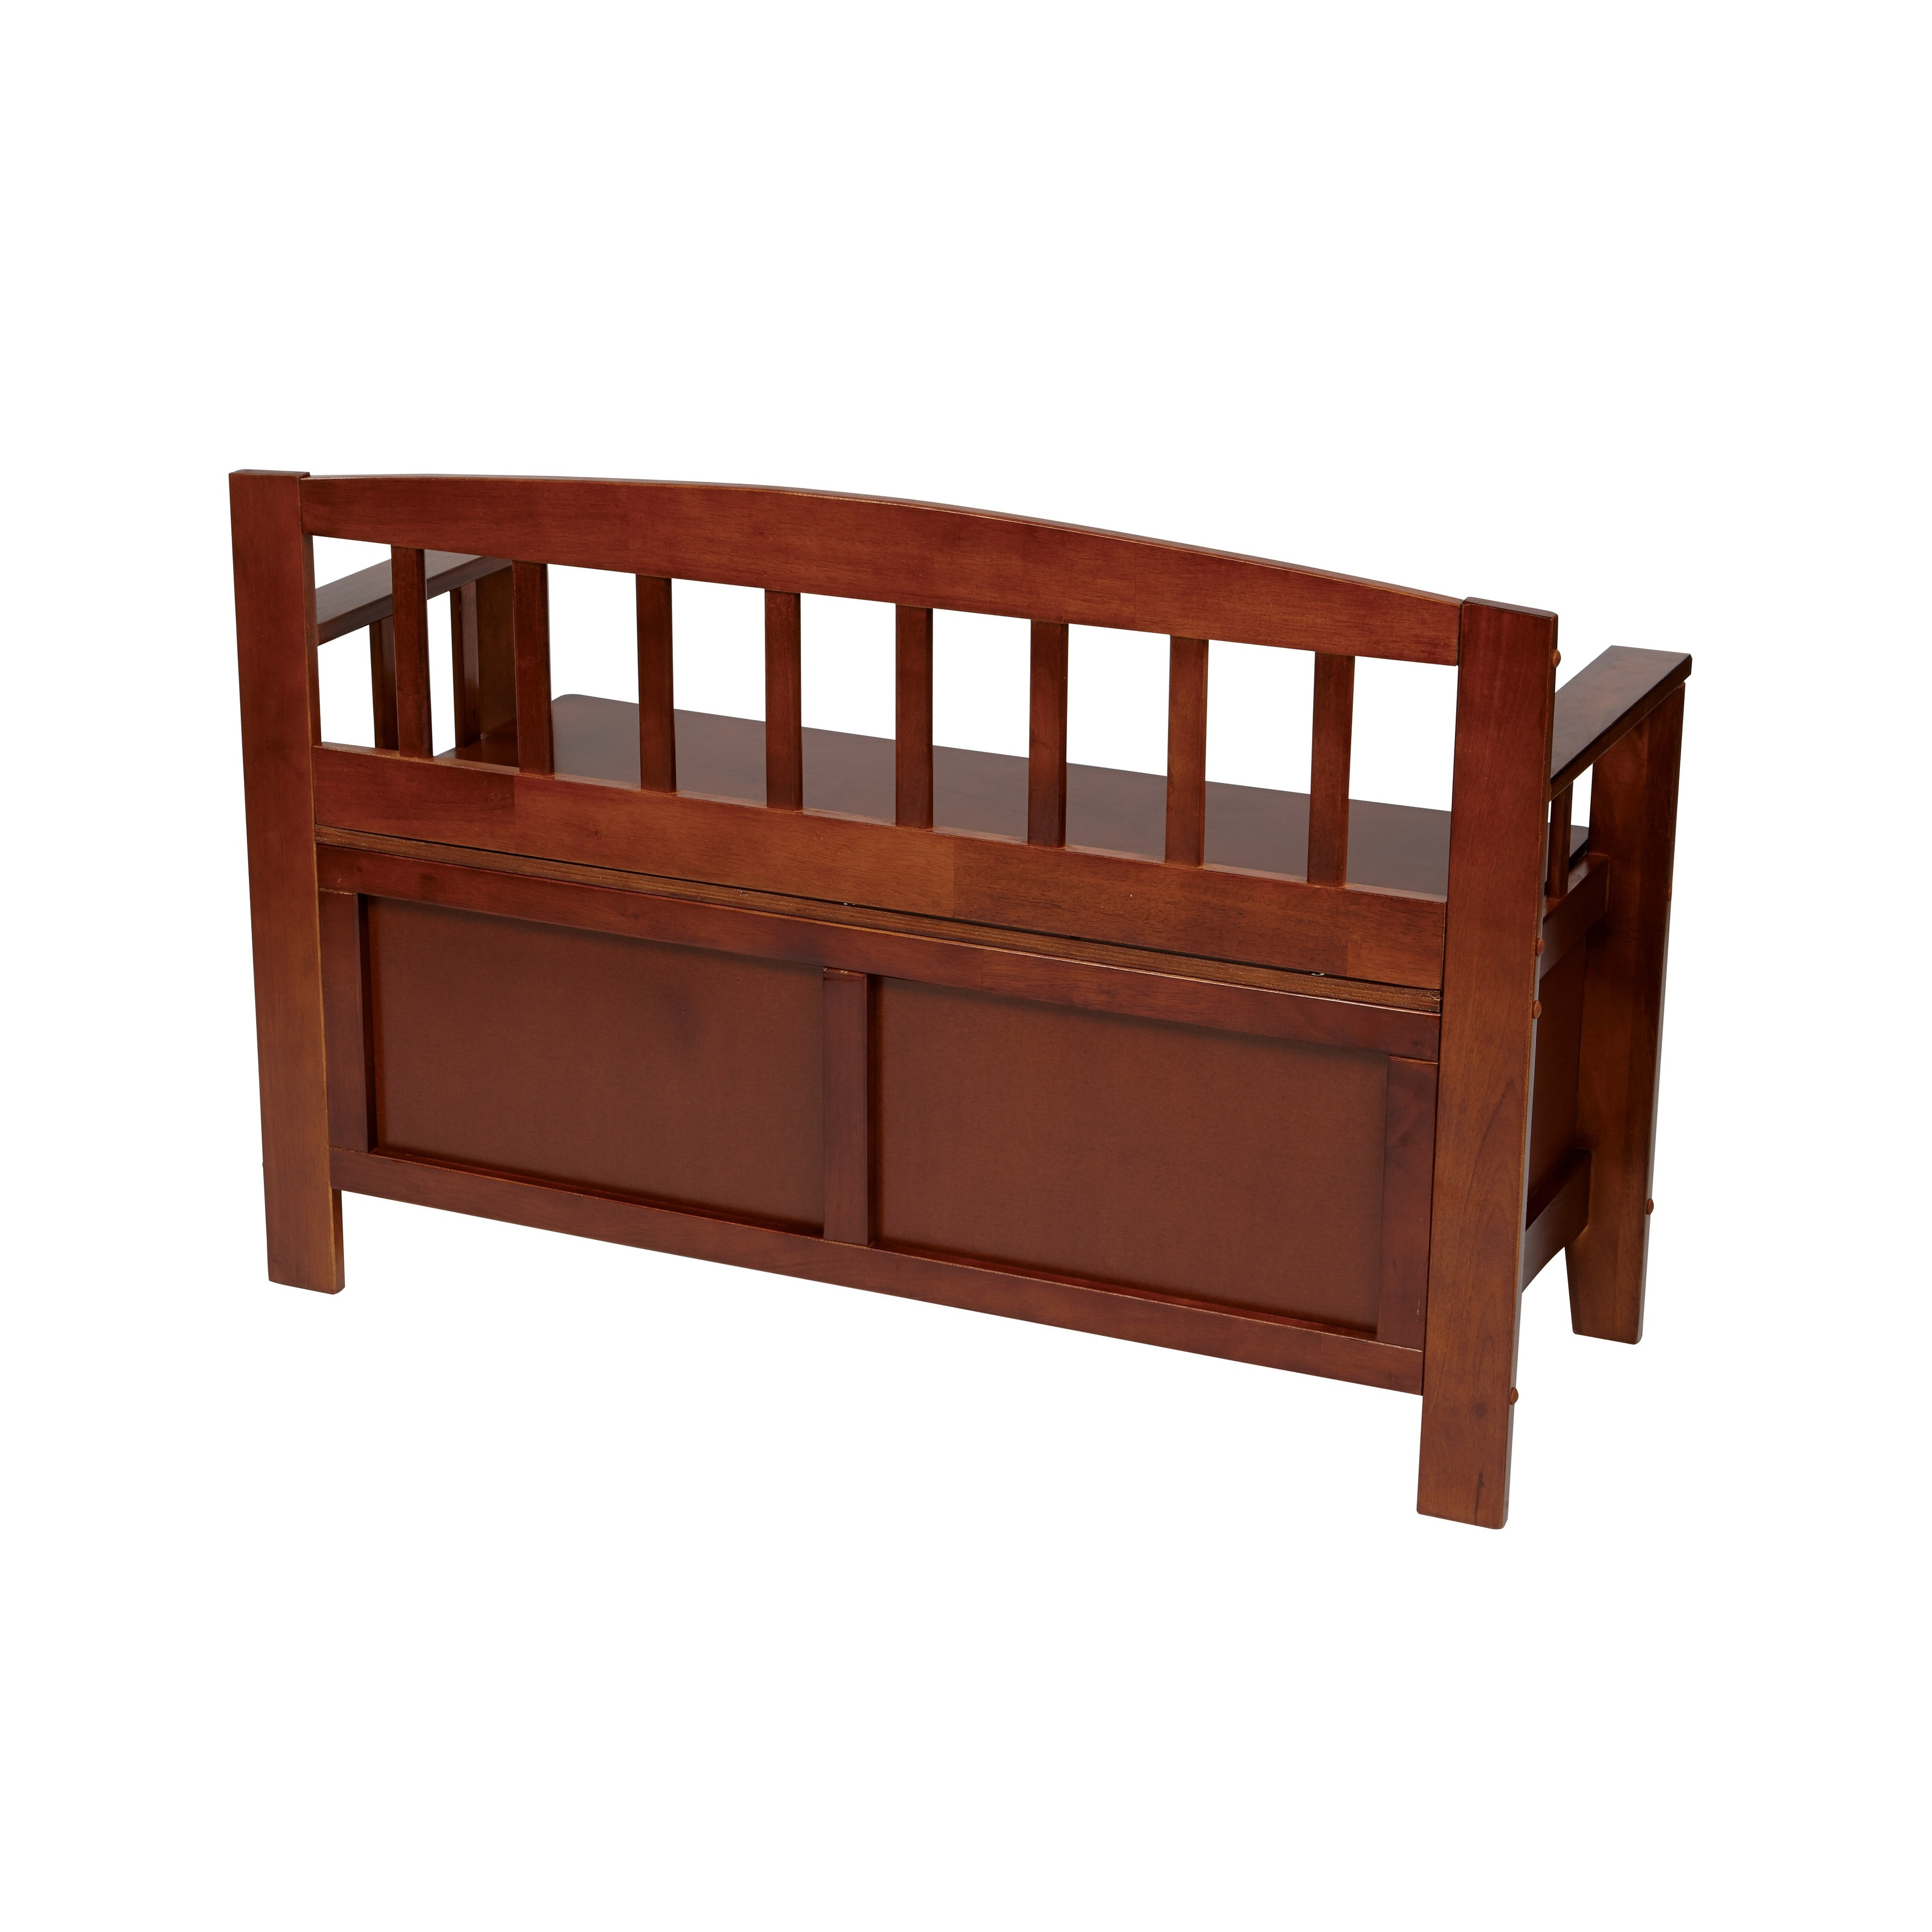 Shop Metro Walnut Finished Mission Back Entryway Storage Bench - Free Shipping Today - Overstock.com - 7998936  sc 1 st  Overstock.com & Shop Metro Walnut Finished Mission Back Entryway Storage Bench ...